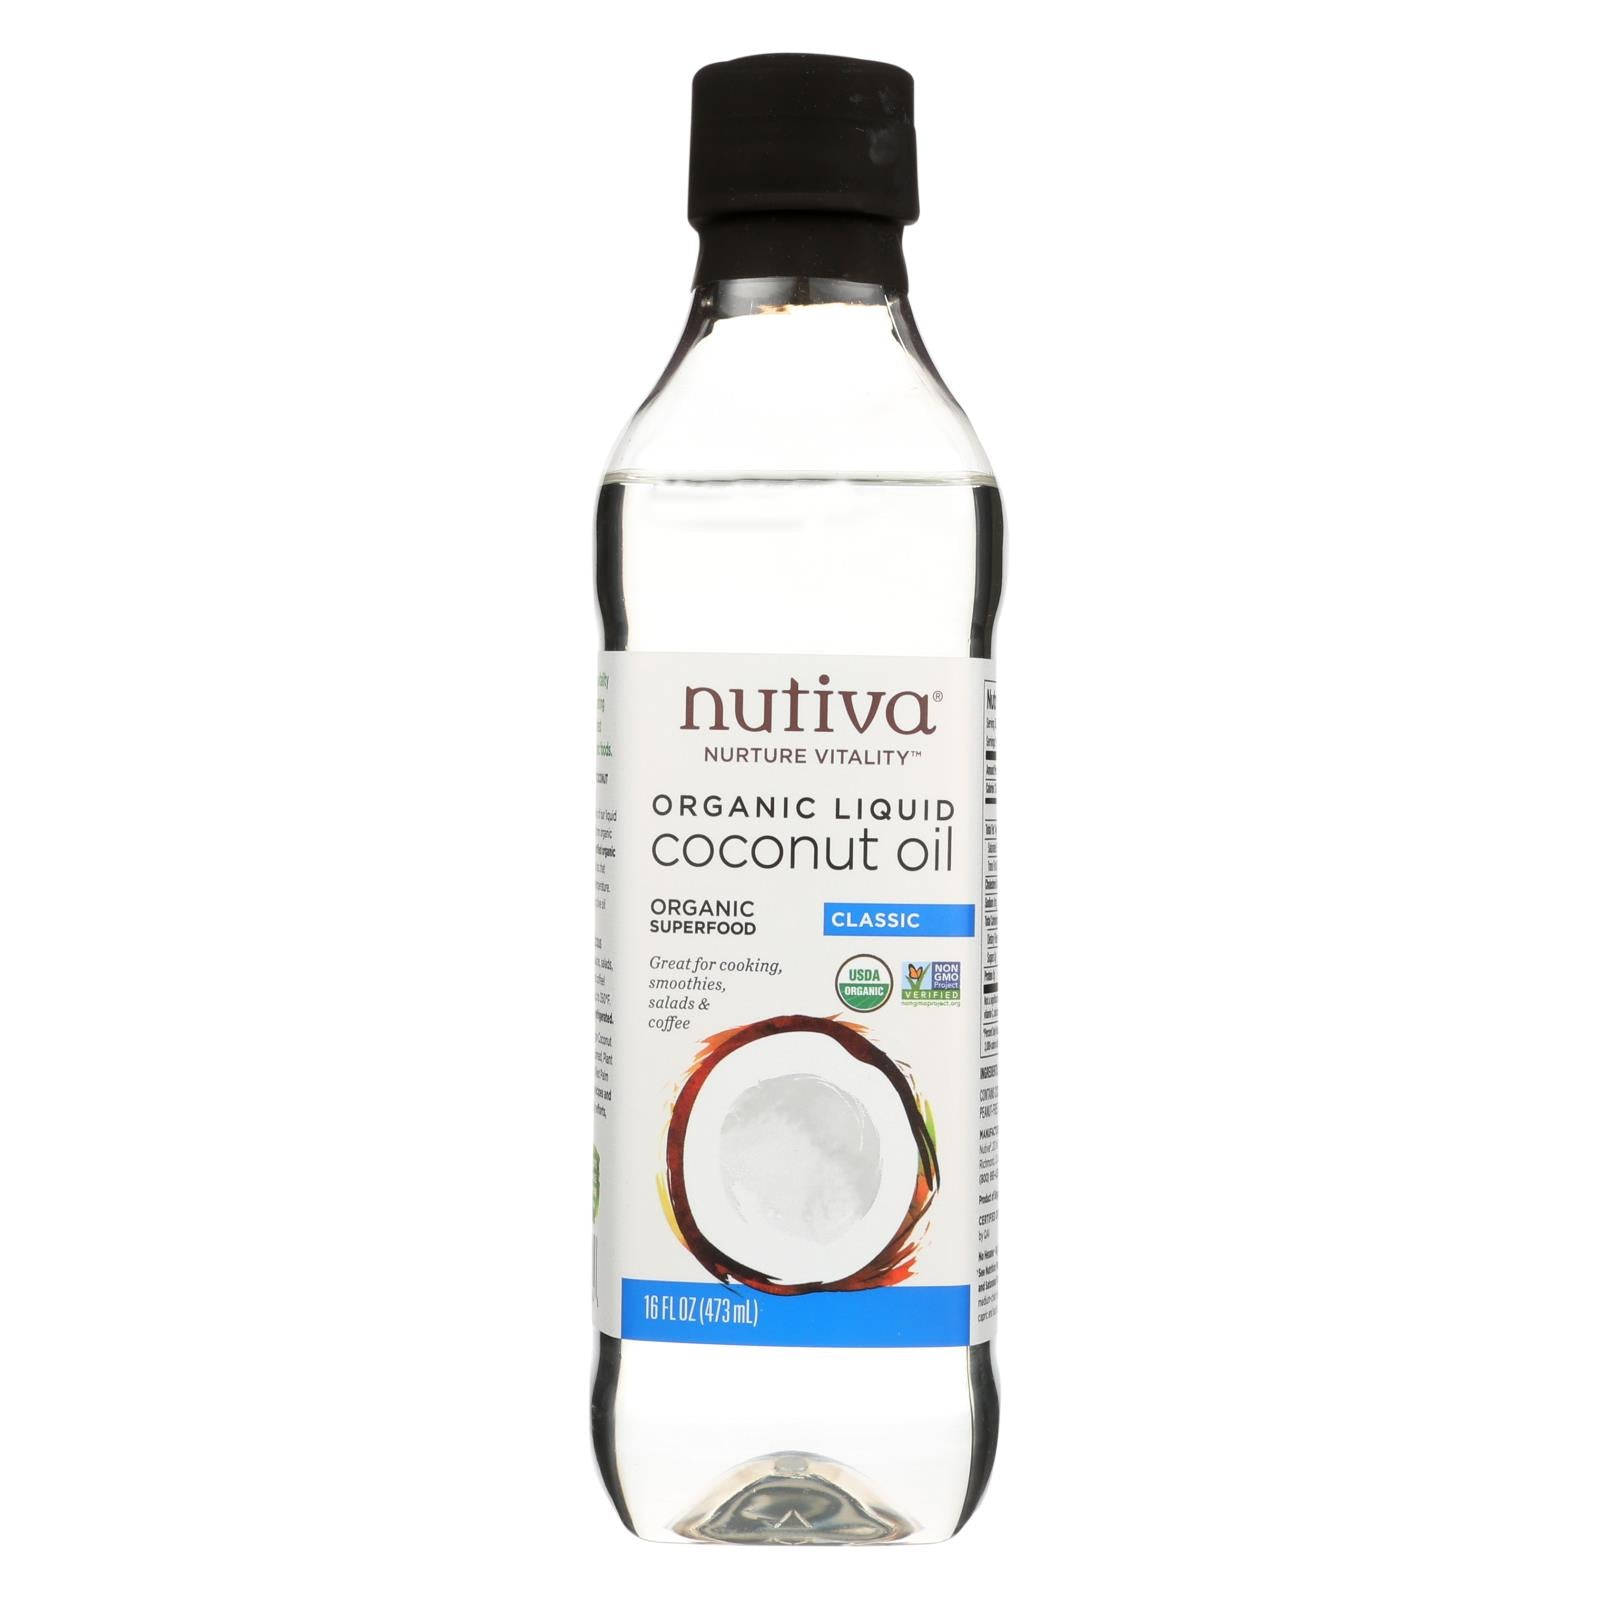 Buy Nutiva Oil - Organic - Liquid Coconut - Case of 6 - 16 fl oz - Cooking Oils from Veroeco.com